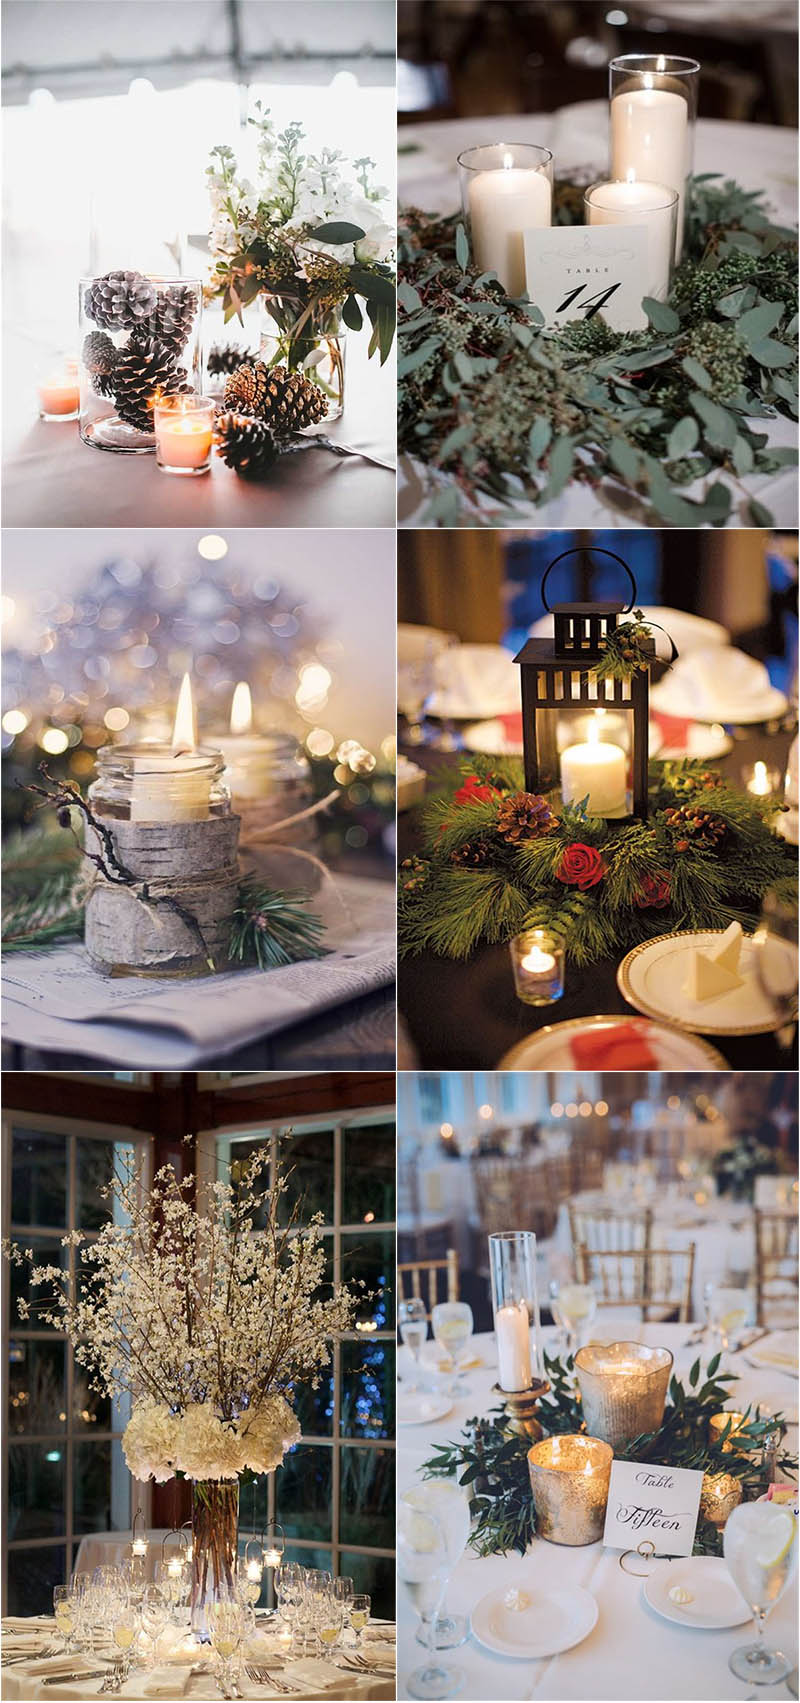 heart-melting winter wedding centerpieces